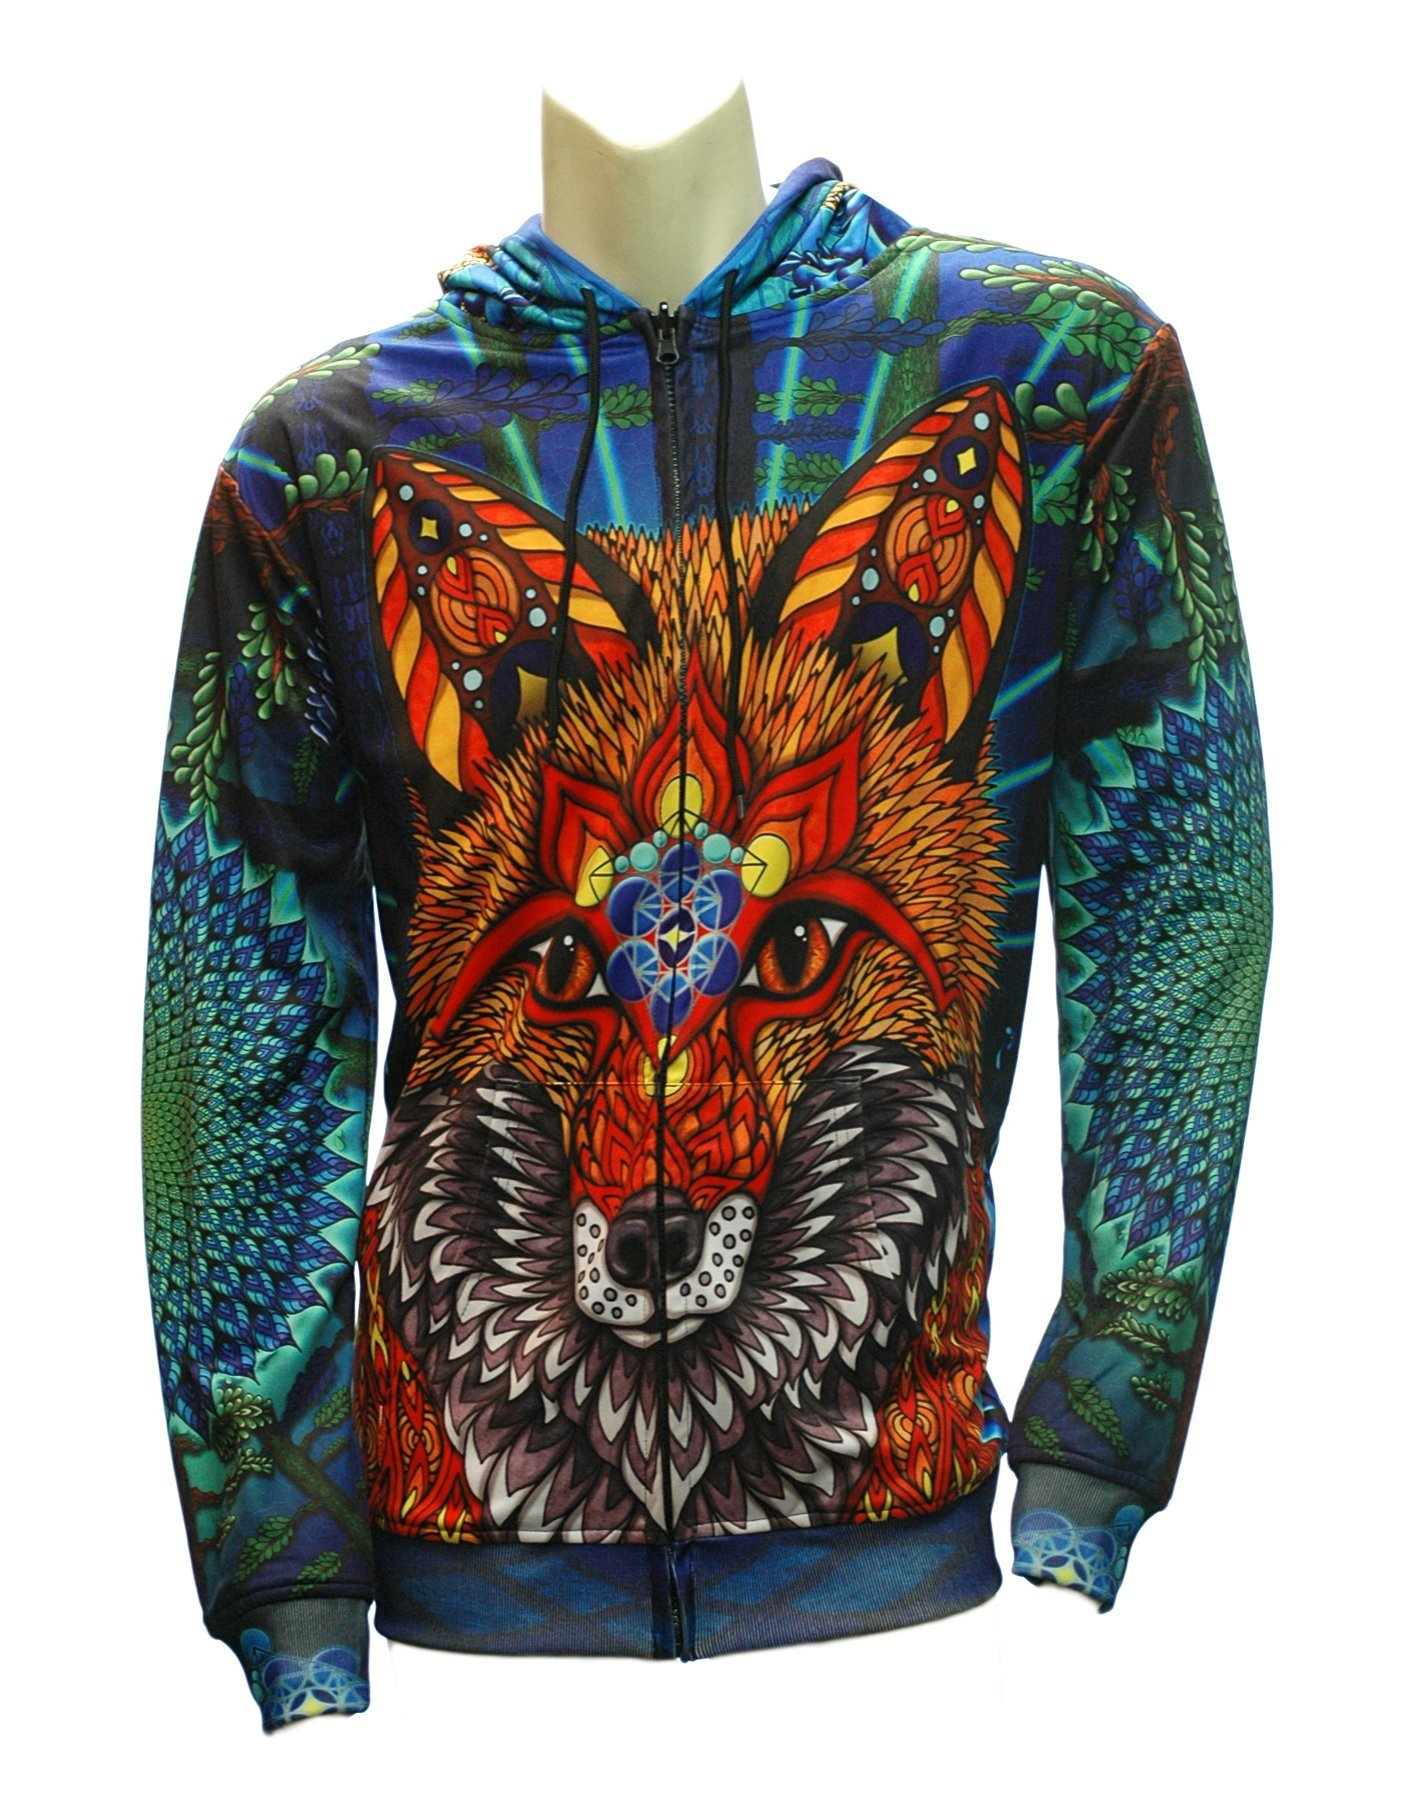 Reversible Electric Fox Zip-up Hoodie  (Outside-Front)